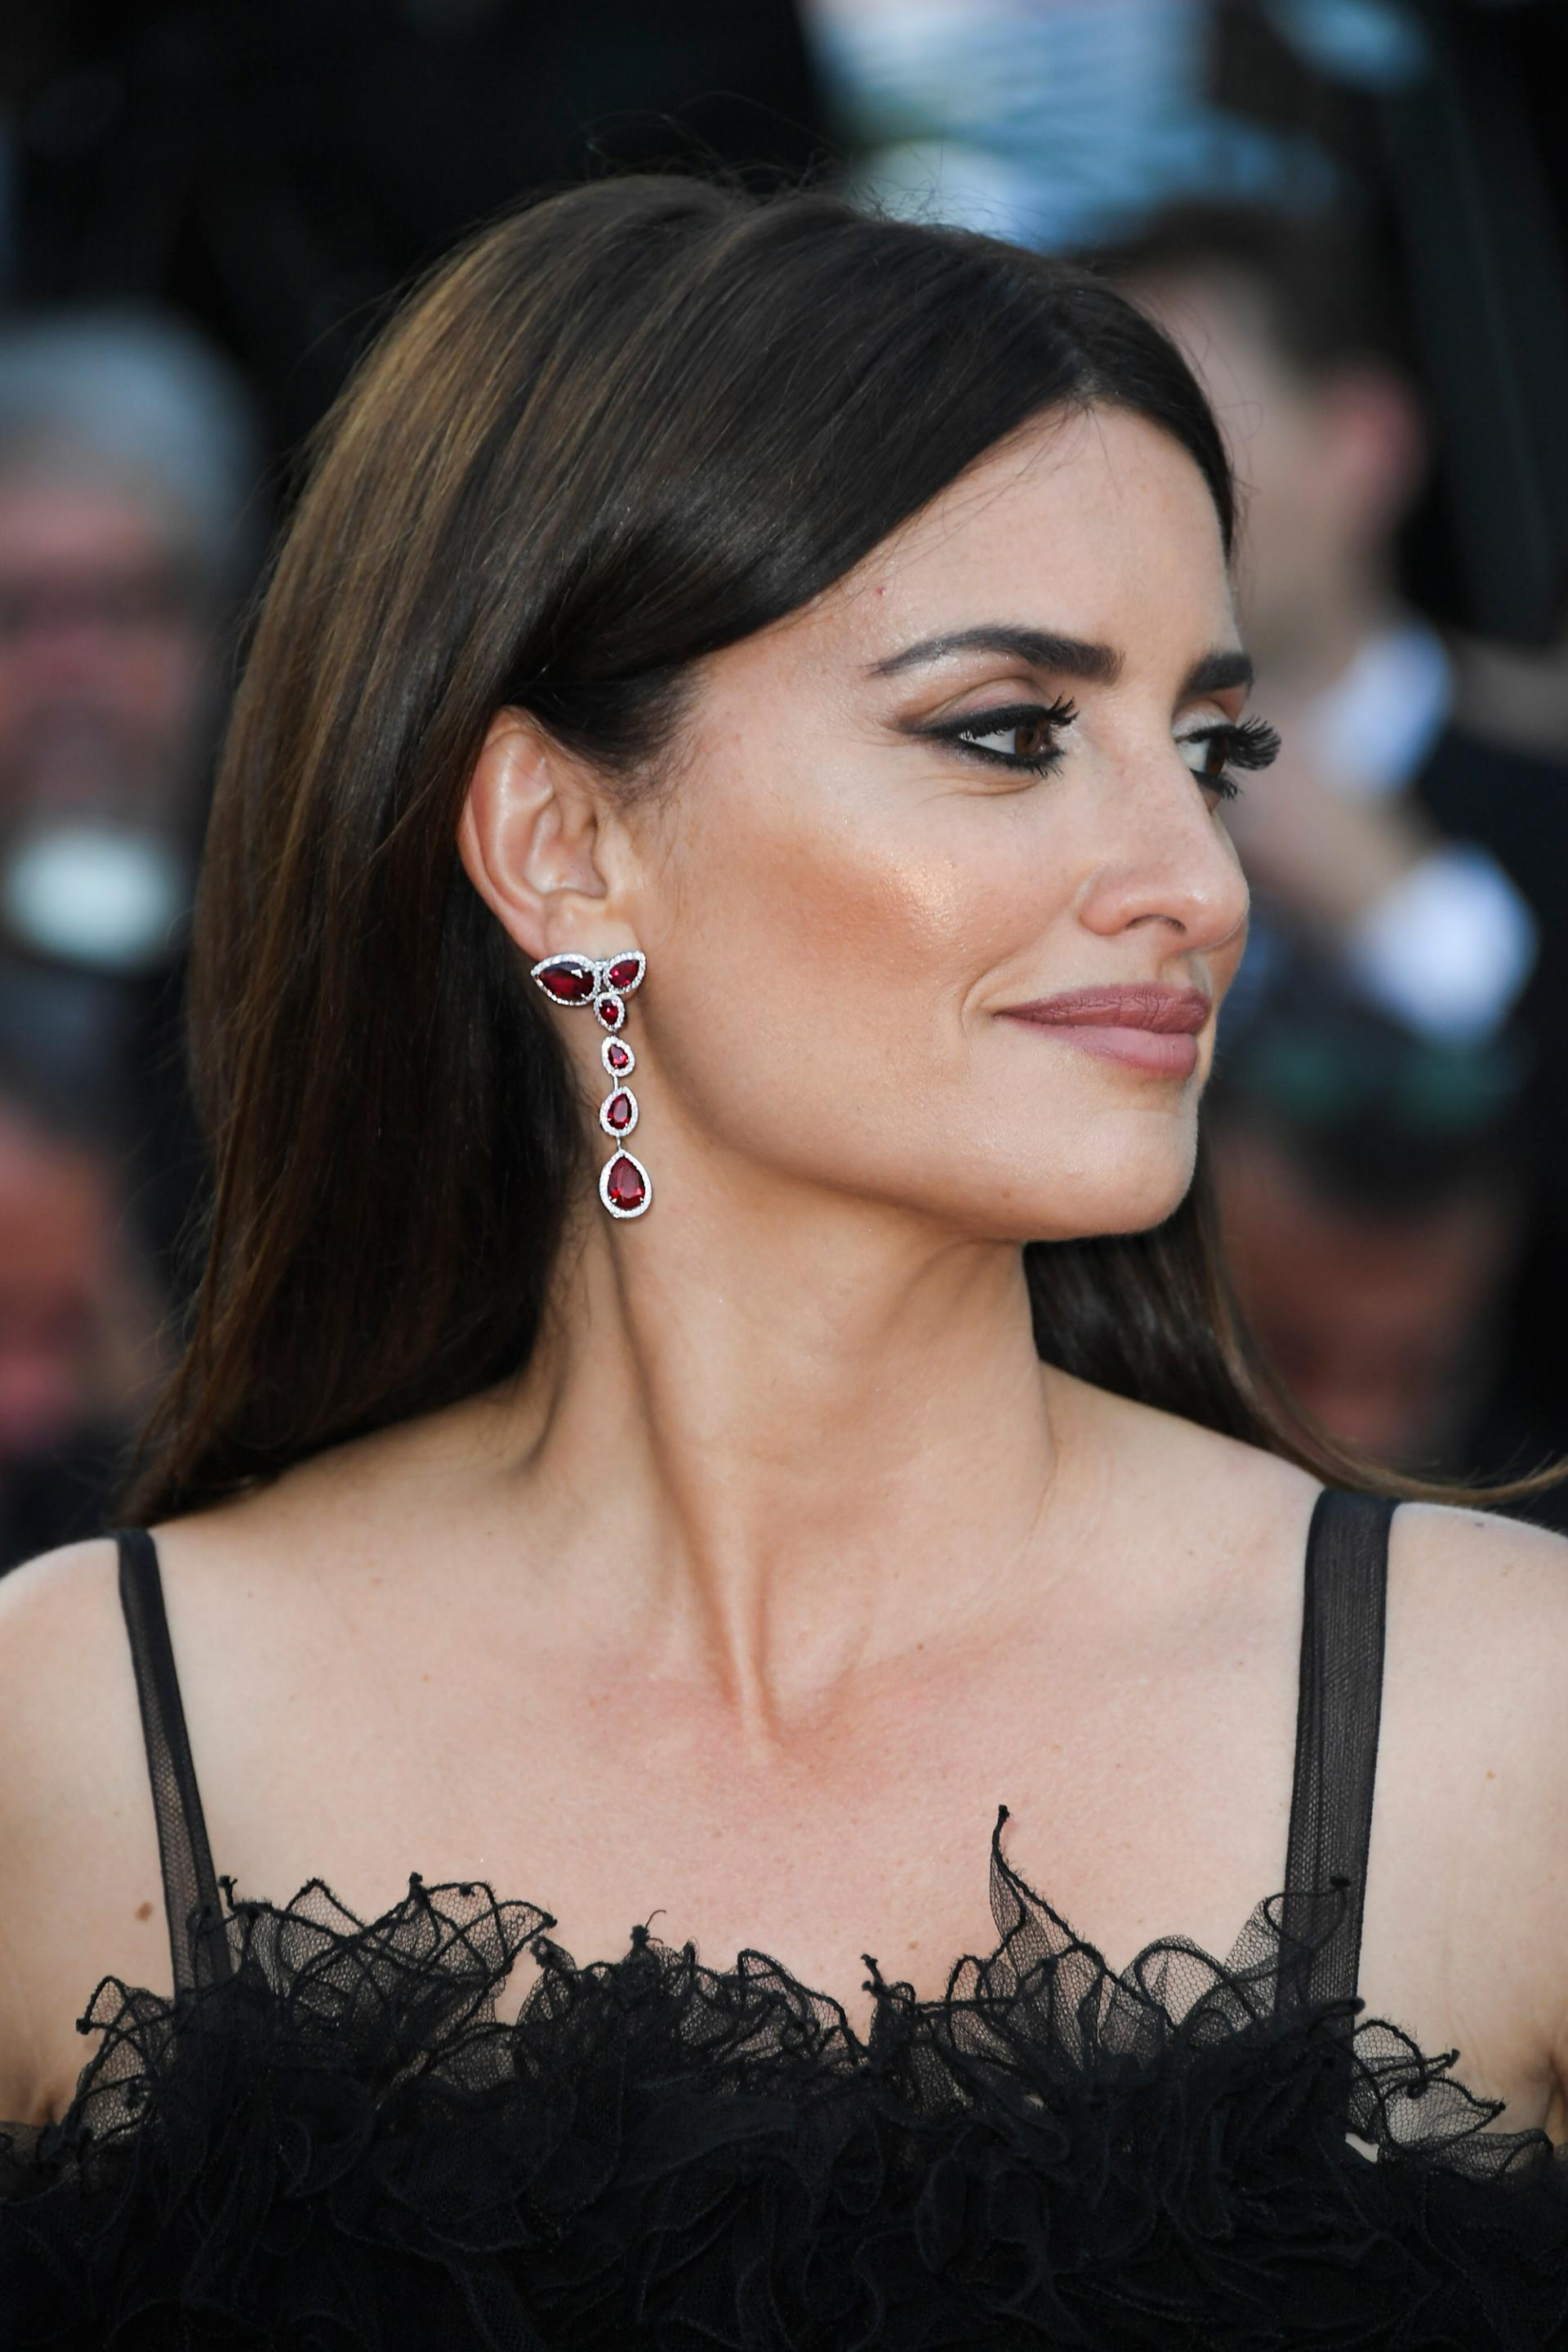 4c10a1cf570a6 Atelier Swarovski by Penélope Cruz Arrives in London: Sustainable ...